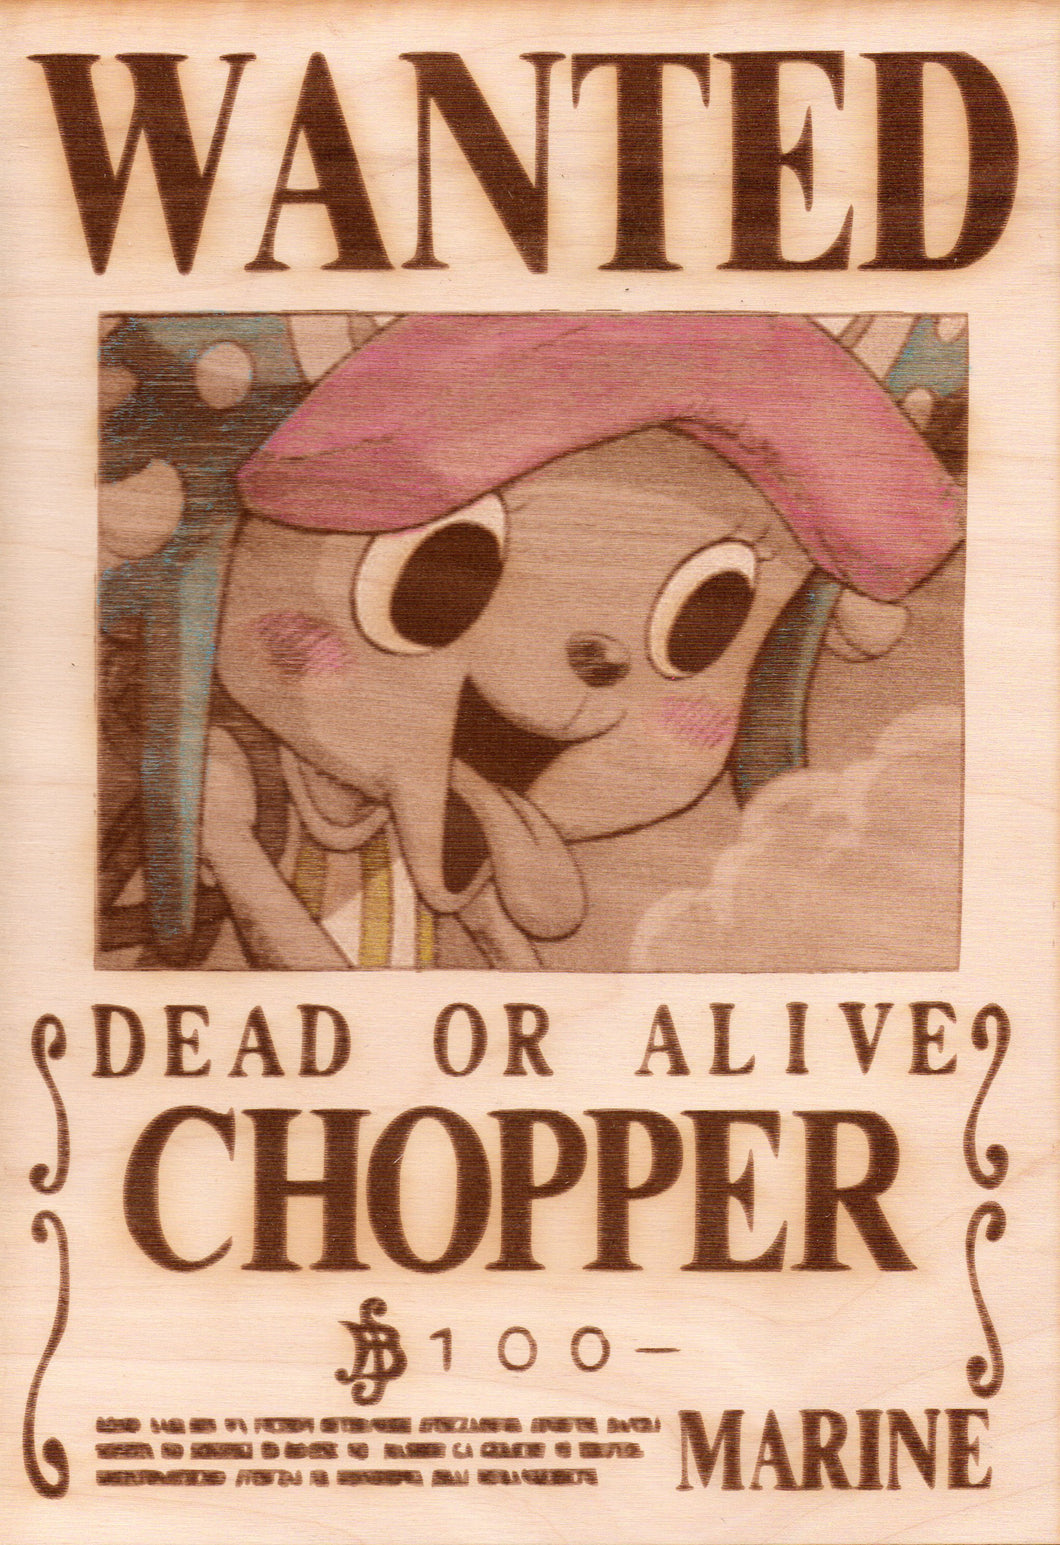 One Piece - Chopper Wooden Wanted Poster (Color) - TantrumCollectibles.com